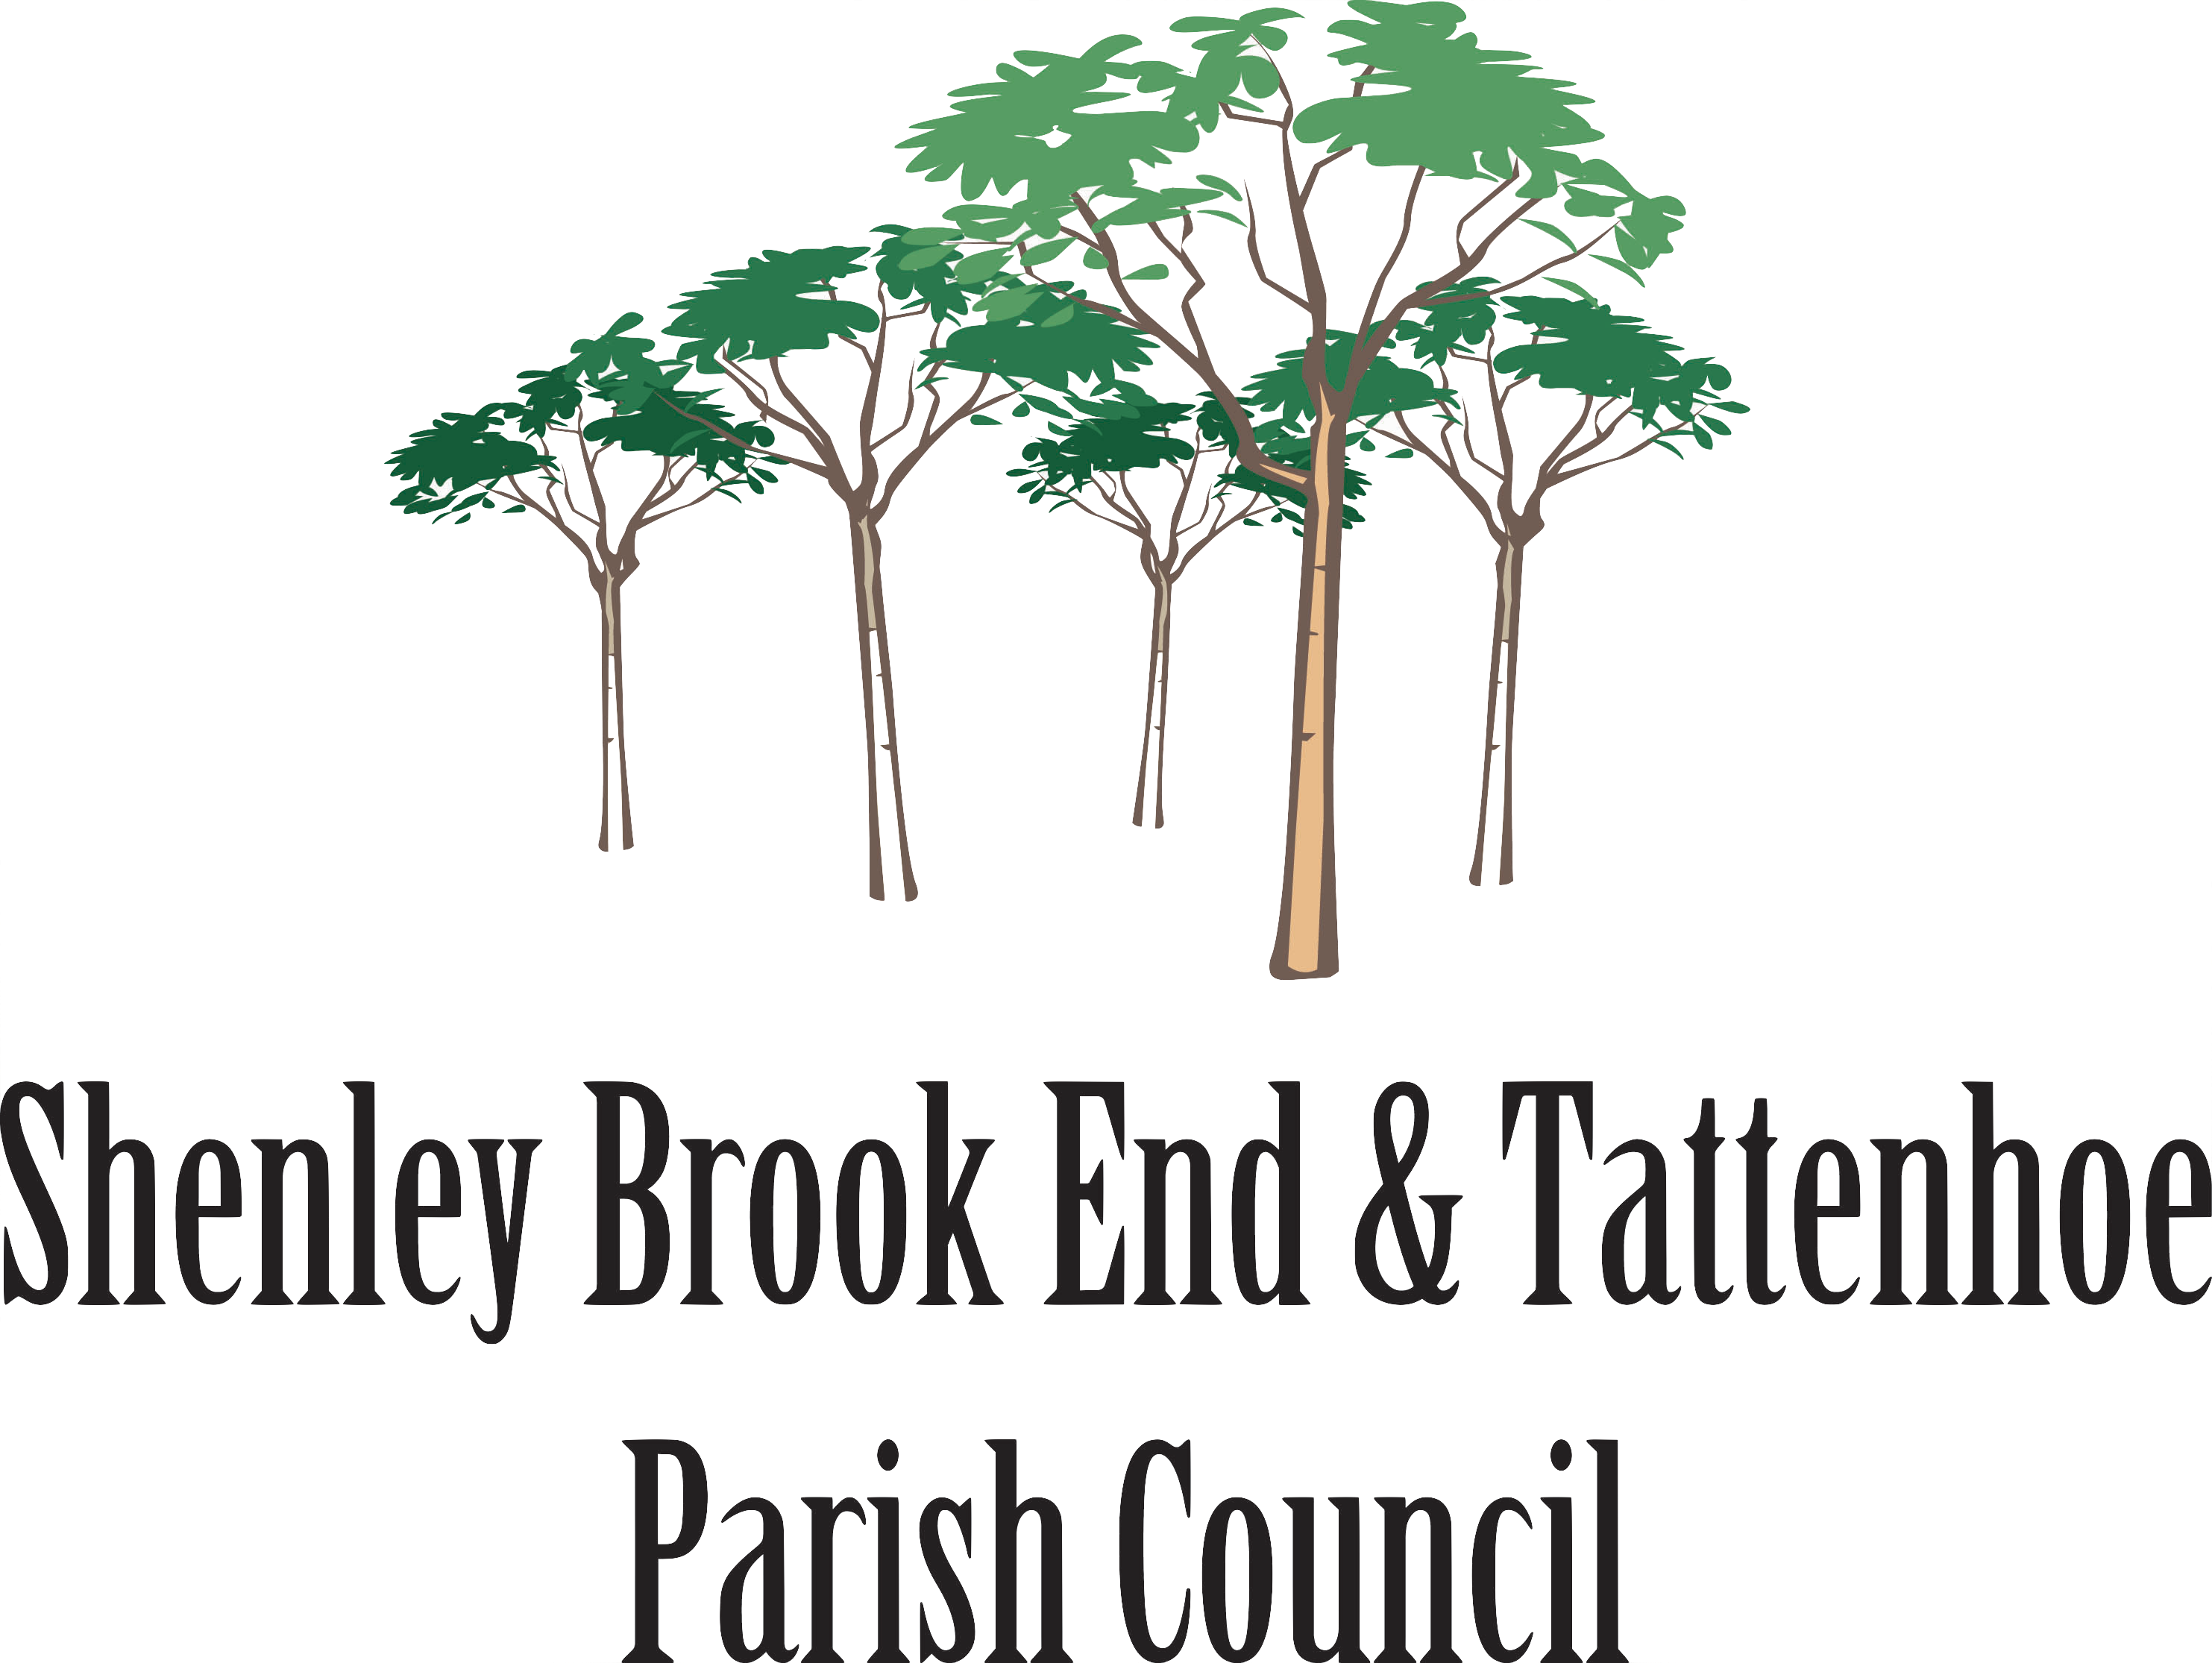 Shenley-Brook-End-Tattenhoe-Parish-Council-Logo